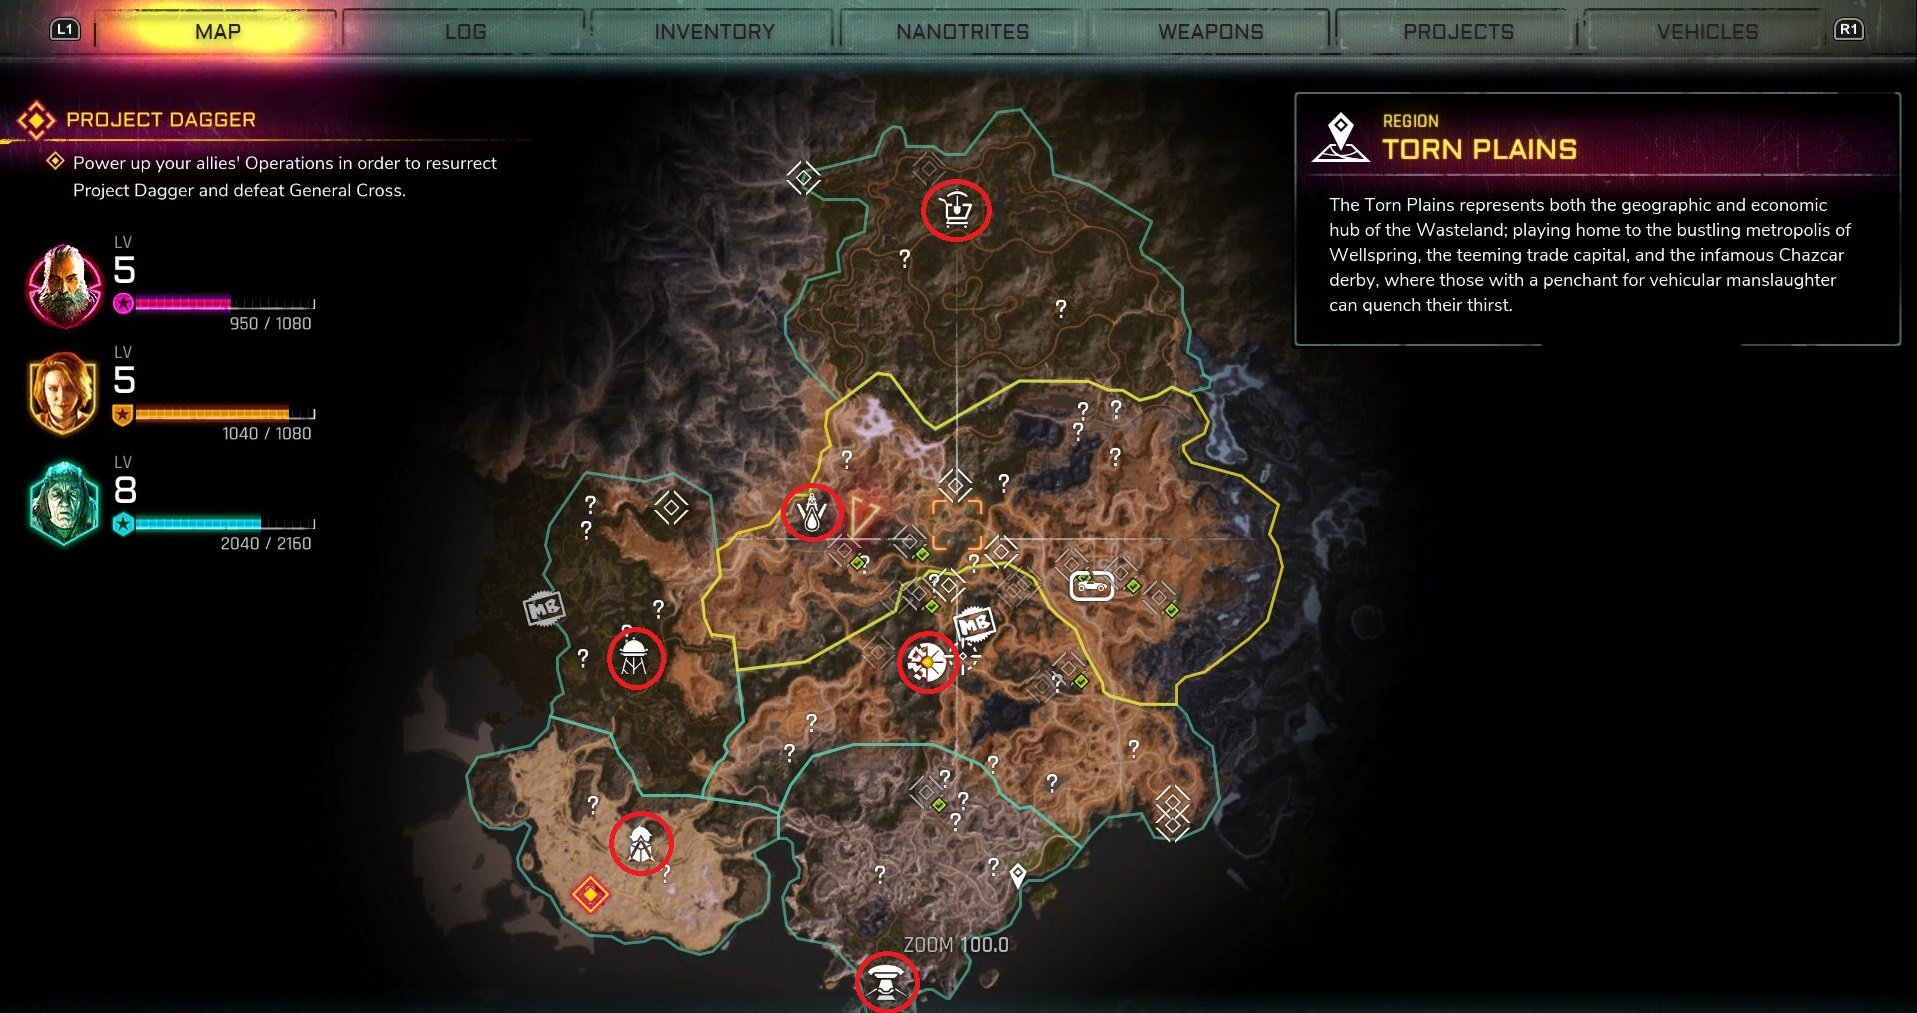 There are five main Trade Towns in Rage 2 which include Gunbarrel, Wellspring, Lagooney, Dreadwood, and Oasis.